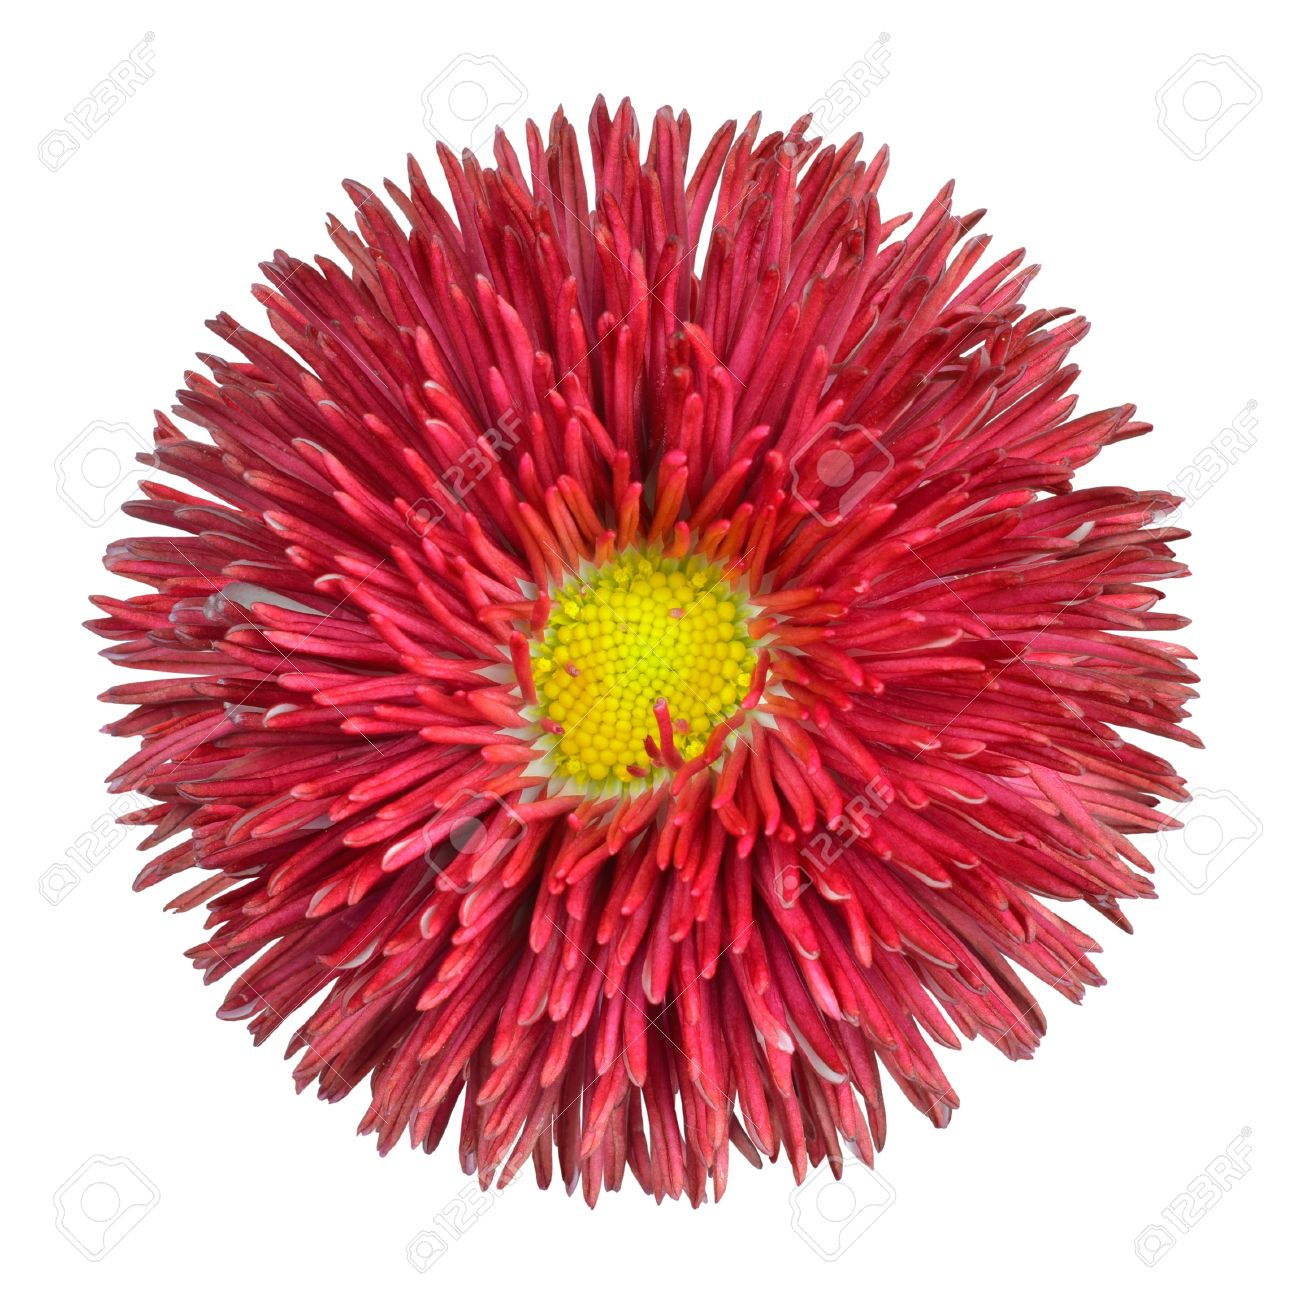 Red perennial daisy flower head with yellow center isolated on red perennial daisy flower head with yellow center isolated on white background bellis perennis mightylinksfo